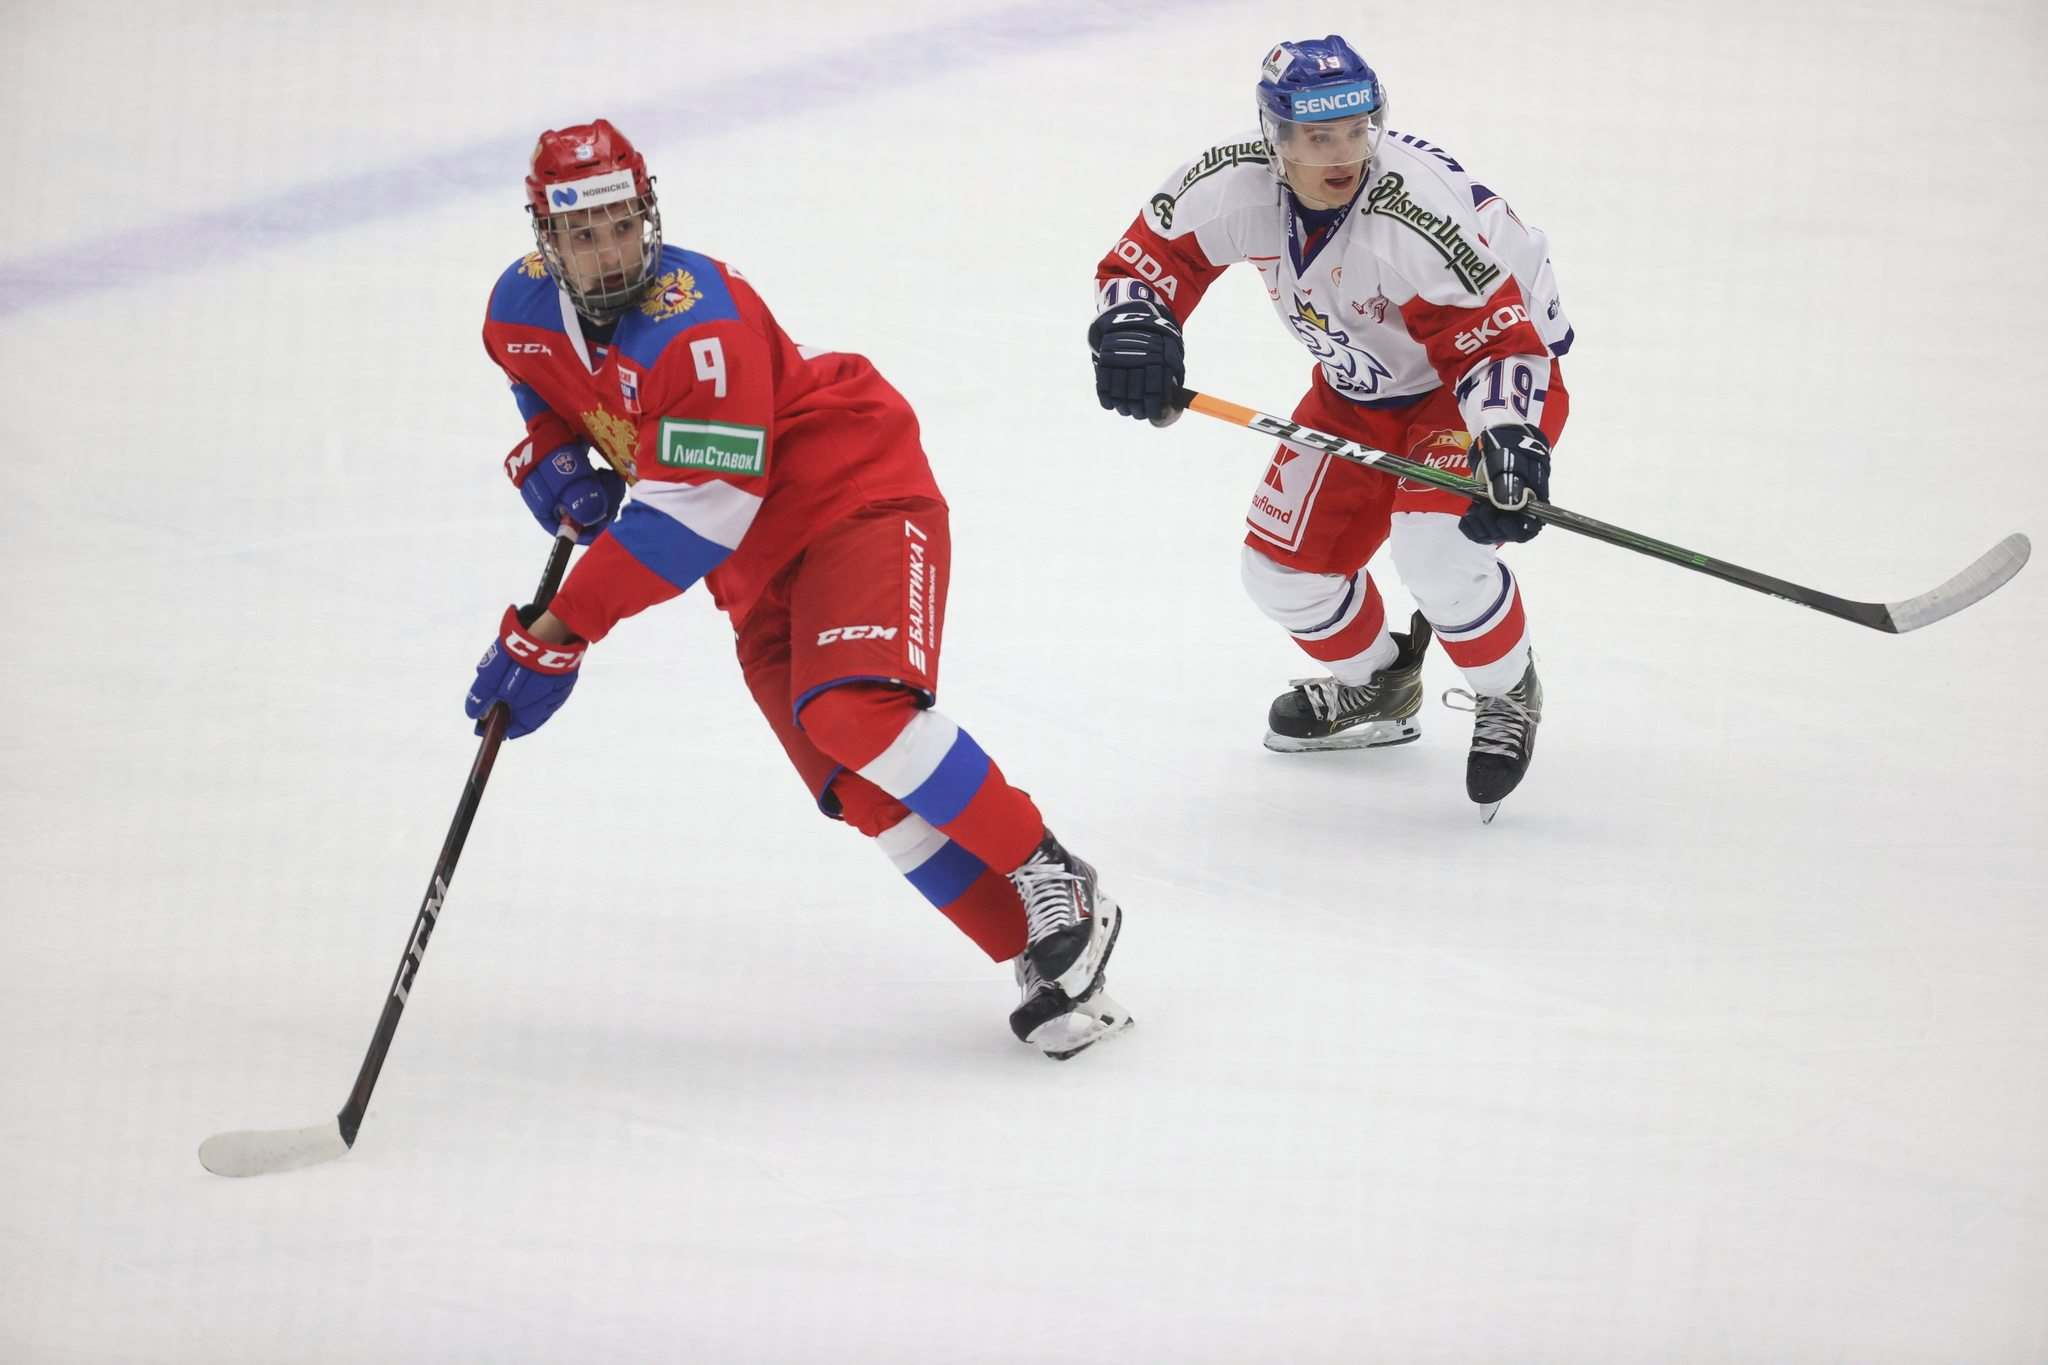 The Winnipeg Jets made Russian Nikita Chibrikov (left) the club's second-round draft choice on Saturday with the 50th overall pick. (Andreas Hillergren / TT News Agency via The Associated Press)</p>